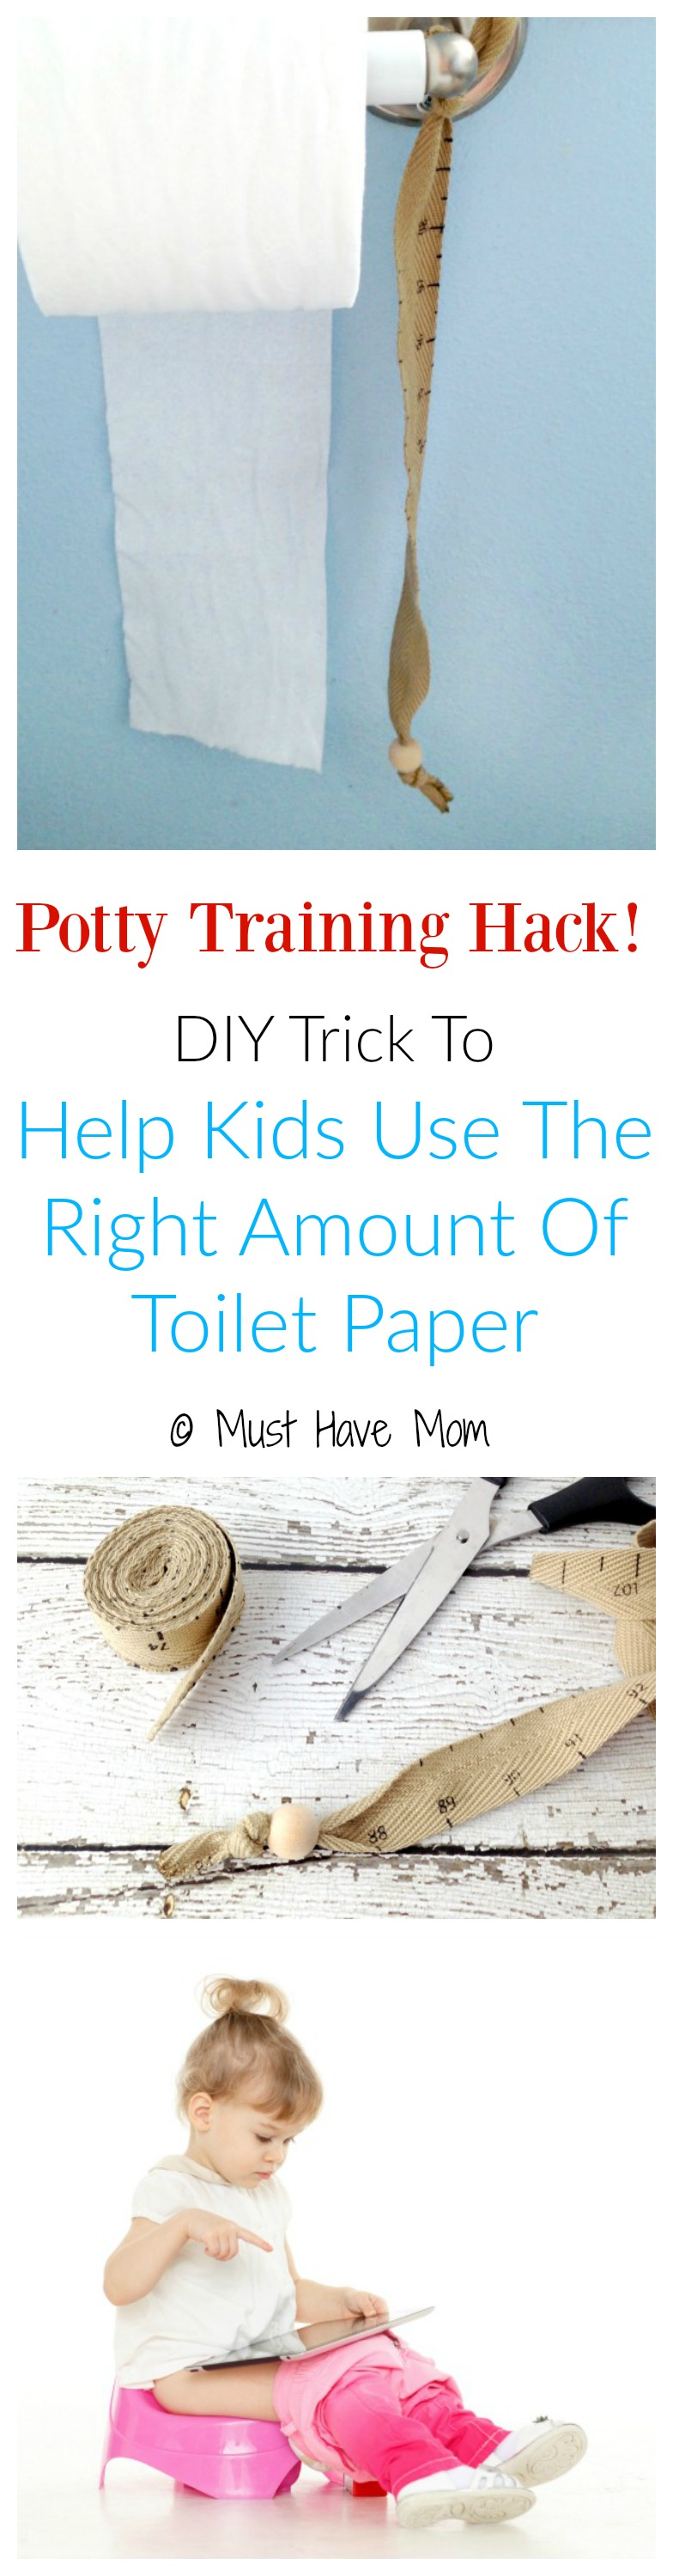 Potty Training Hack! DIY Trick to help kids use the right amount of toilet paper! No more flooding the toilet or wasting all your toilet paper!